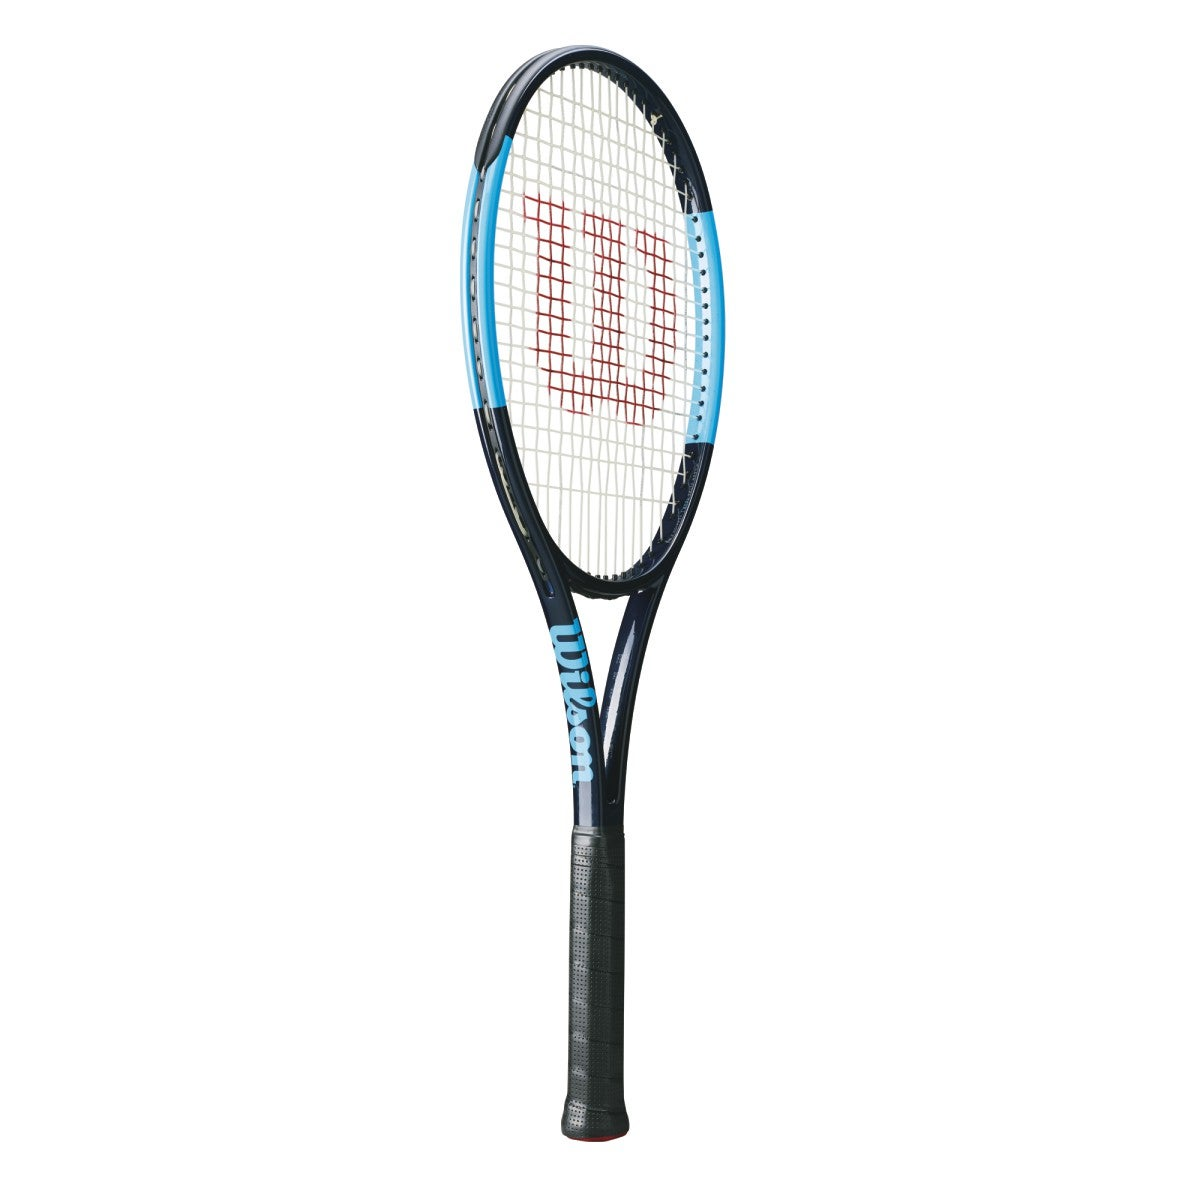 Ultra Tour Tennis Racket